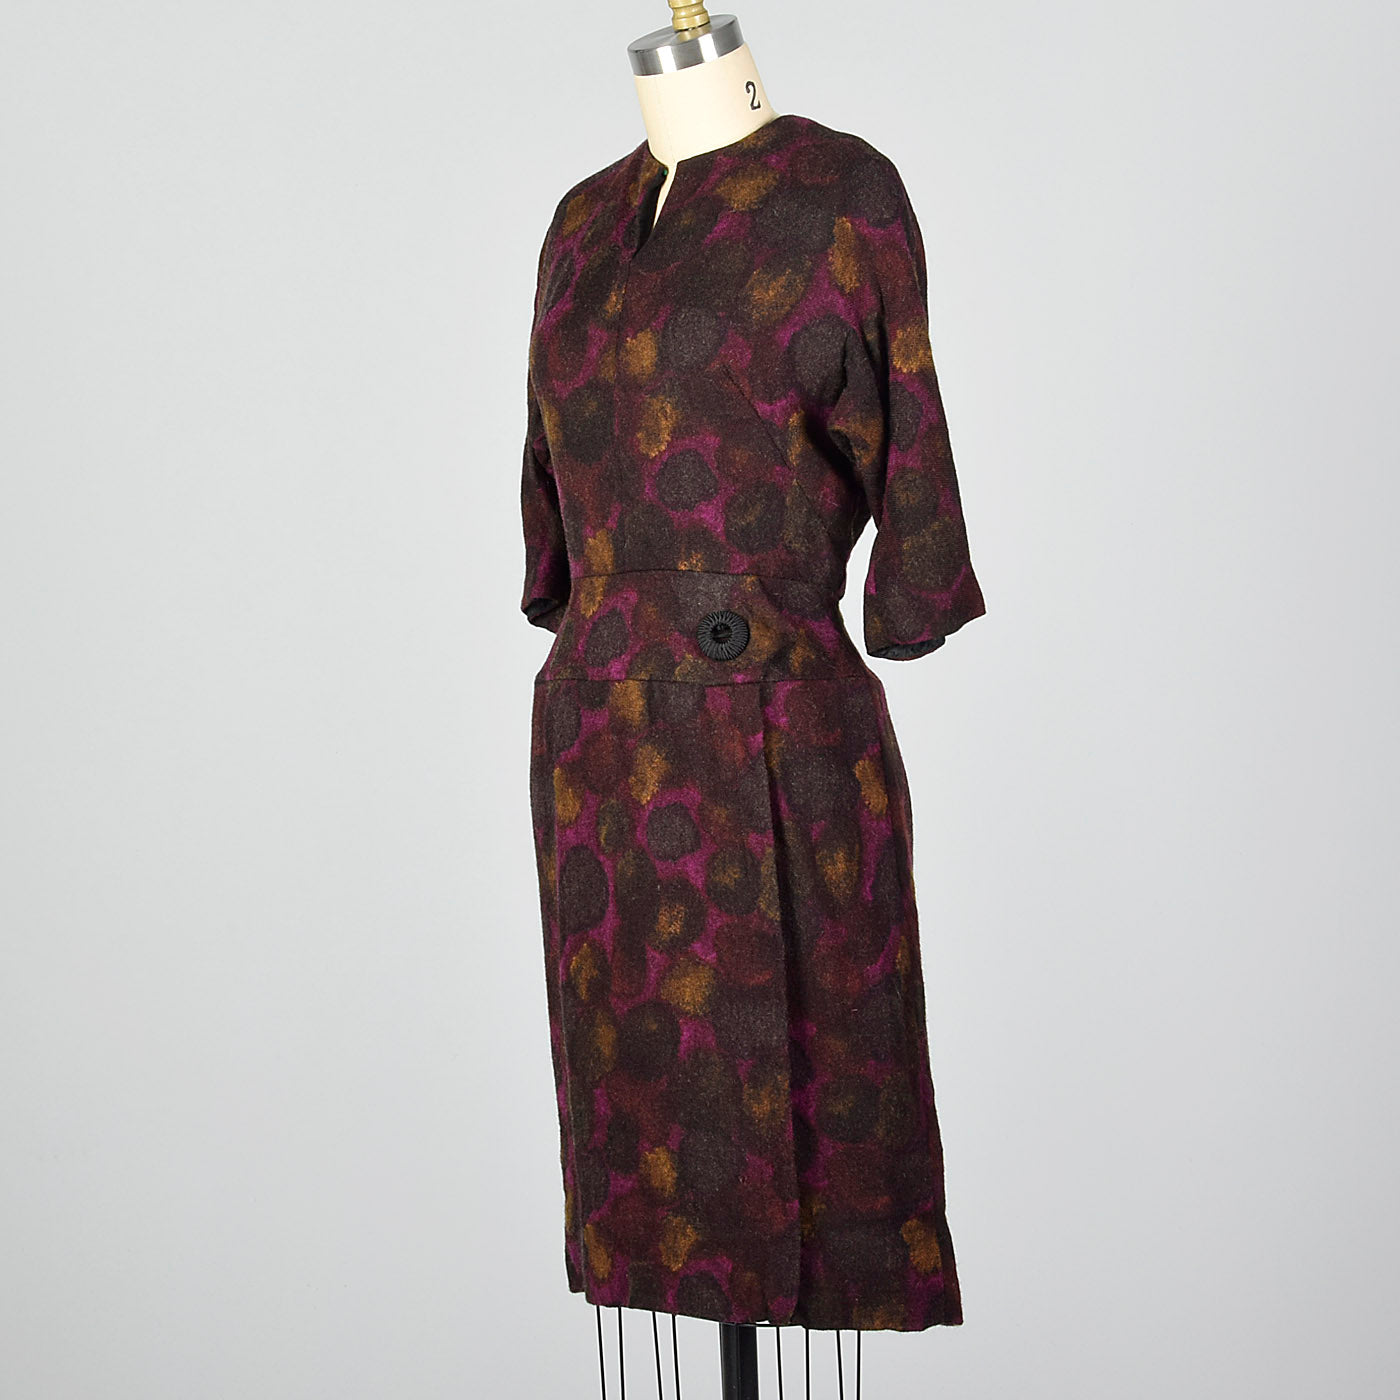 1950s Abstract Purple Print Dress